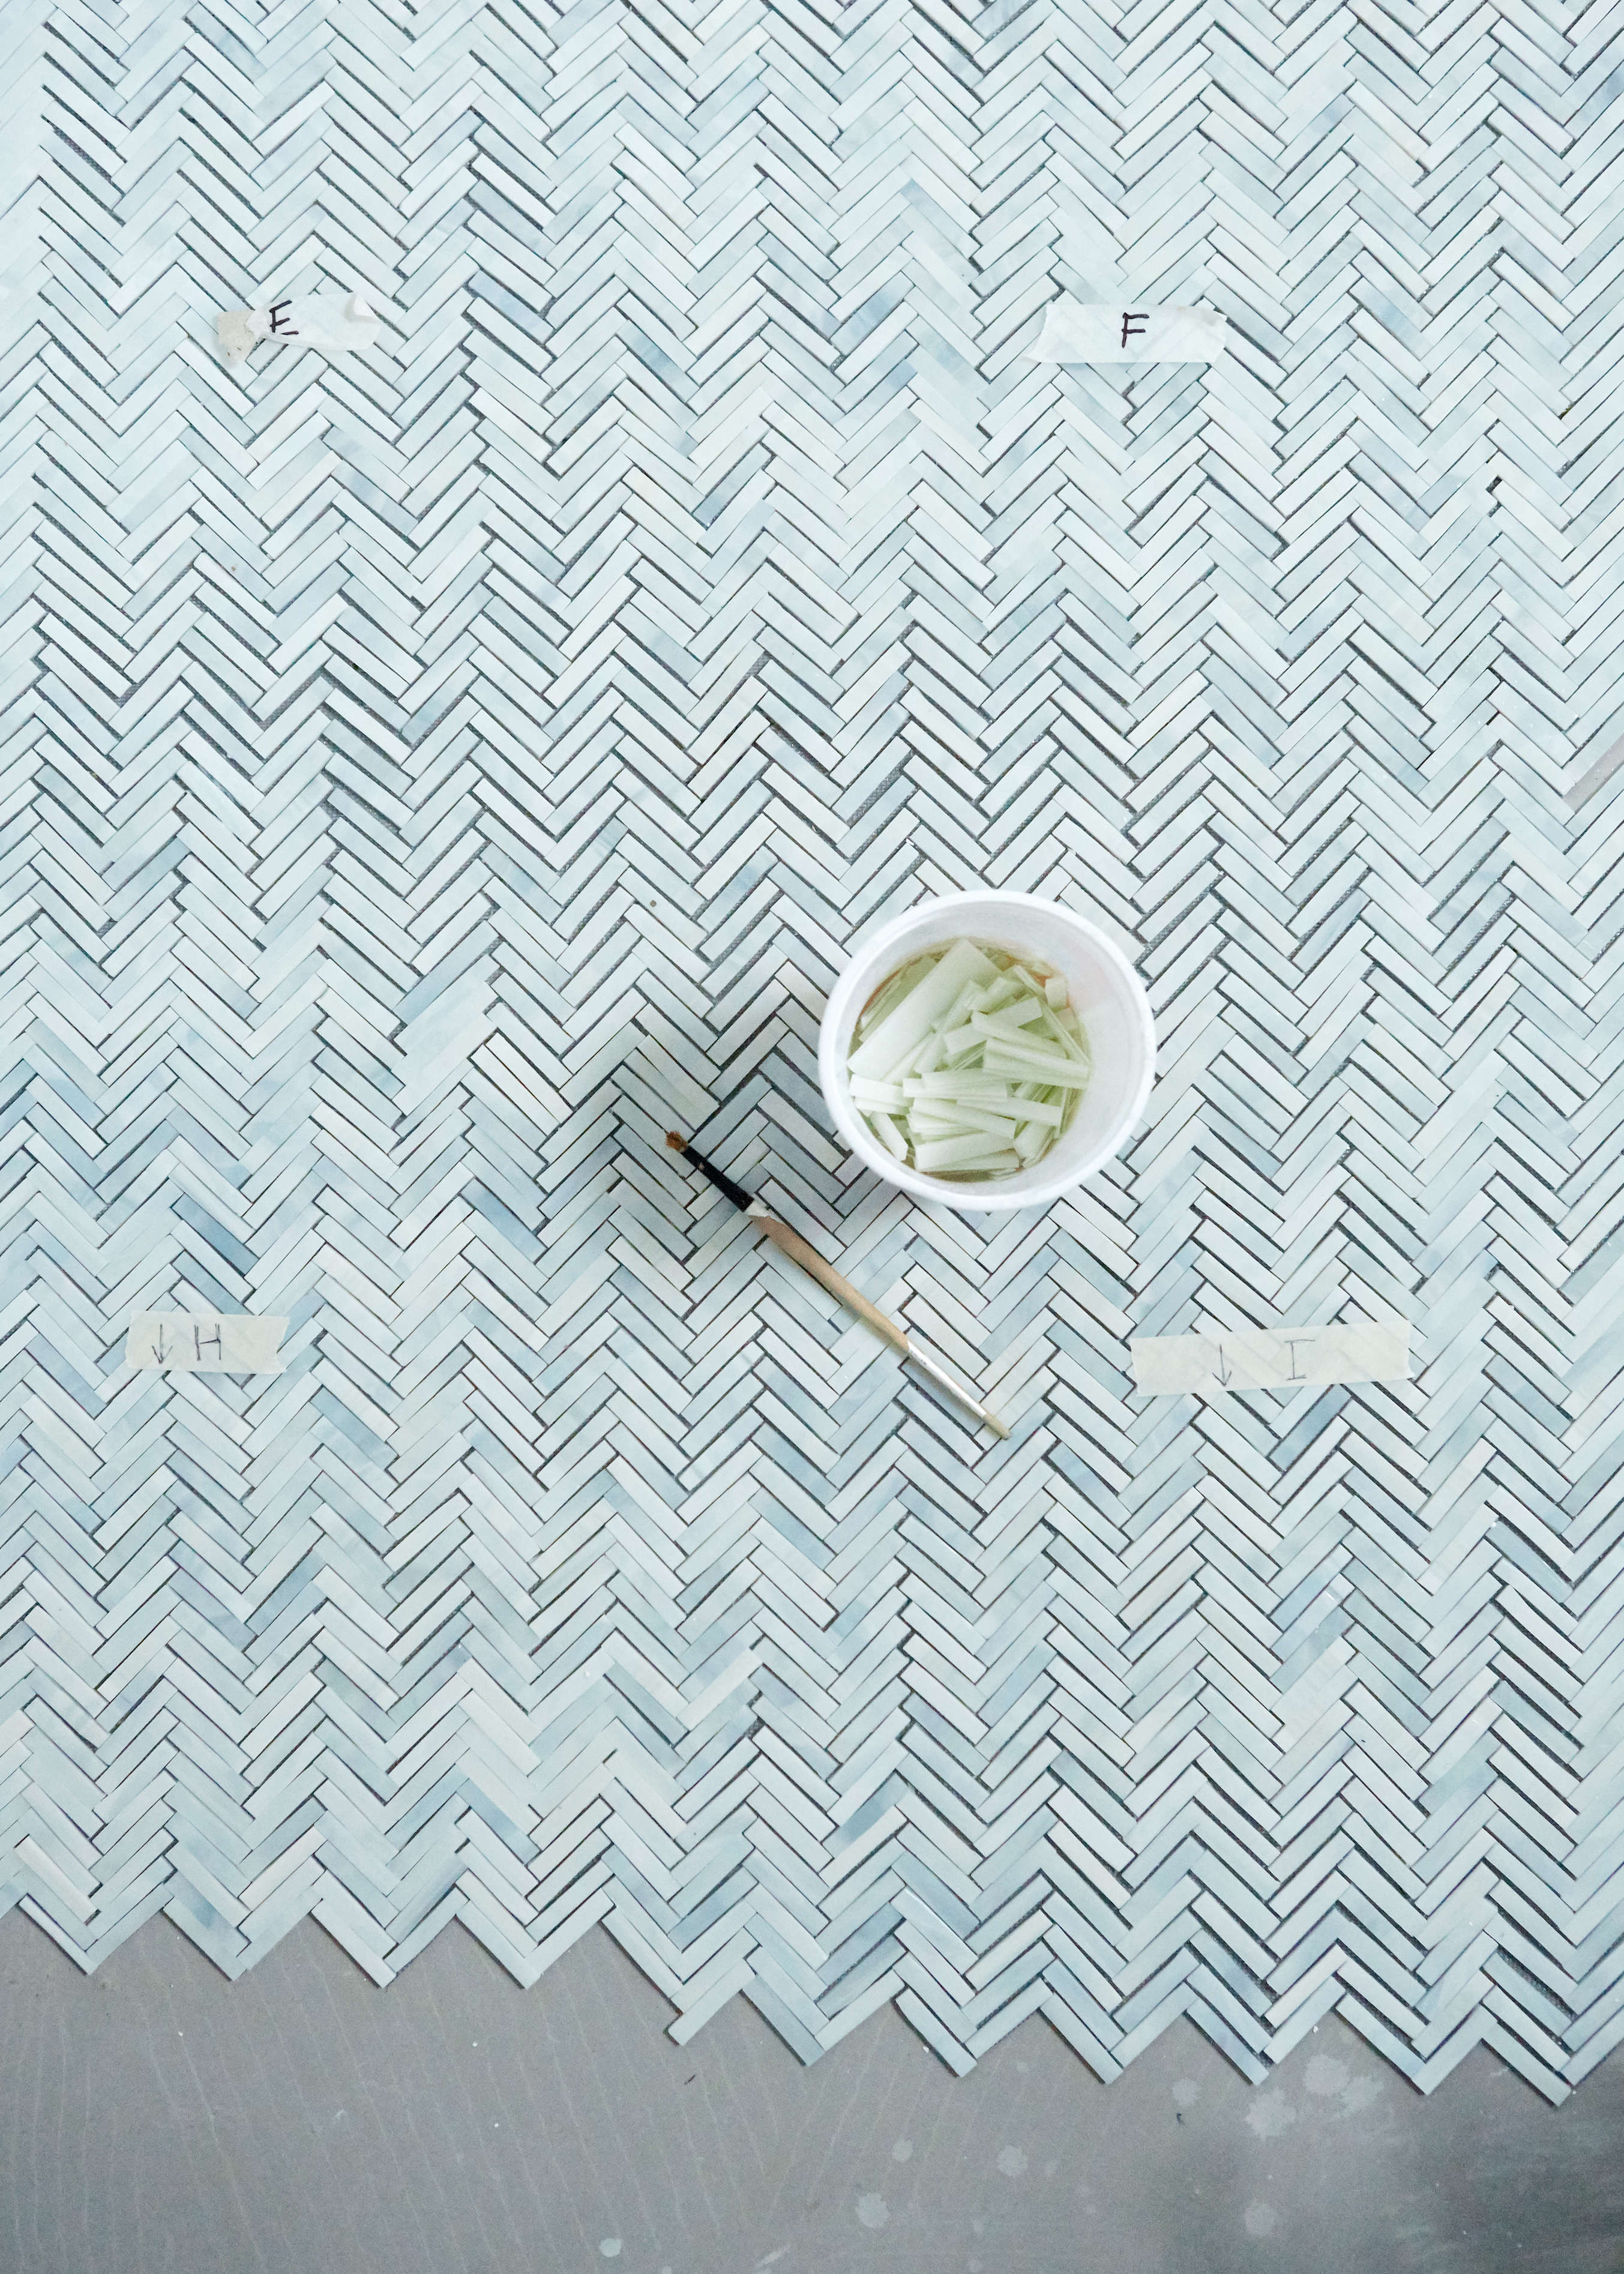 Myers uses a no-VOC industrial adhesive by Eco-Bond to adhere the tesserae to the mesh. Laying the tiles on the concrete mortar bed is what brings out the foggy blue variationsin the opal glass. After the tiles are cut, Myers notes that she mixes up the pieces &#8